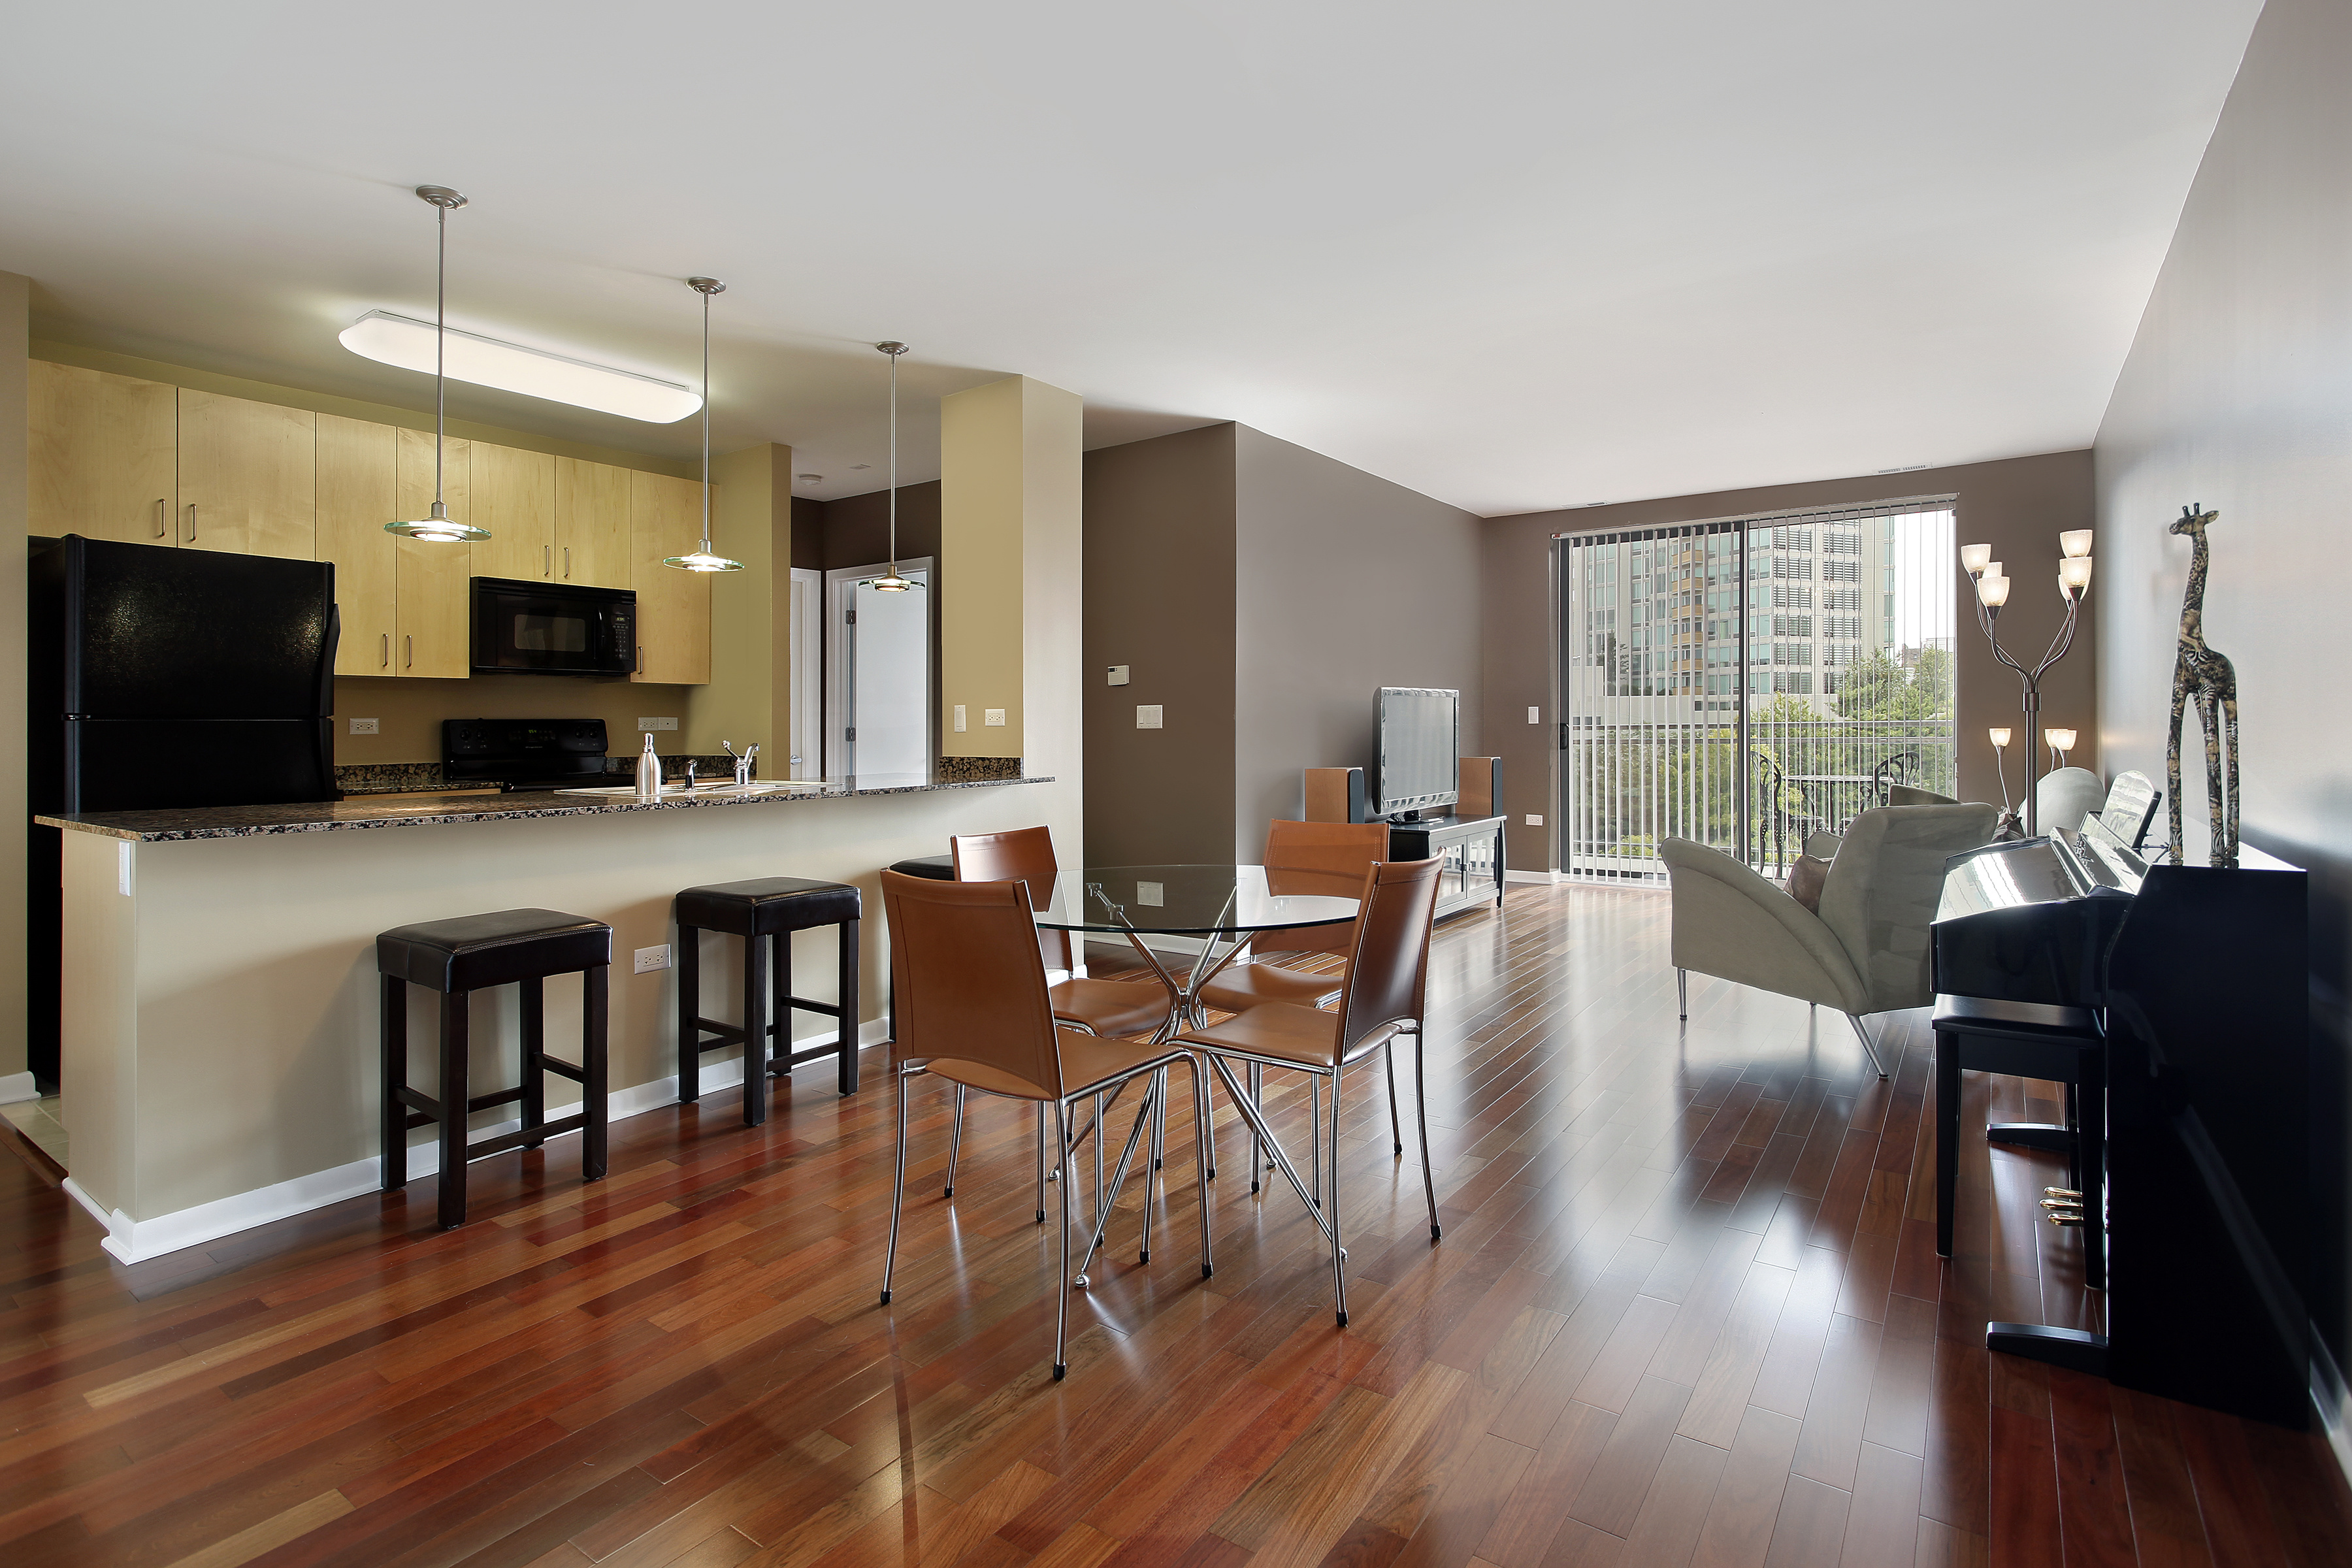 Condo with open floor plan and granite kitchen counter top